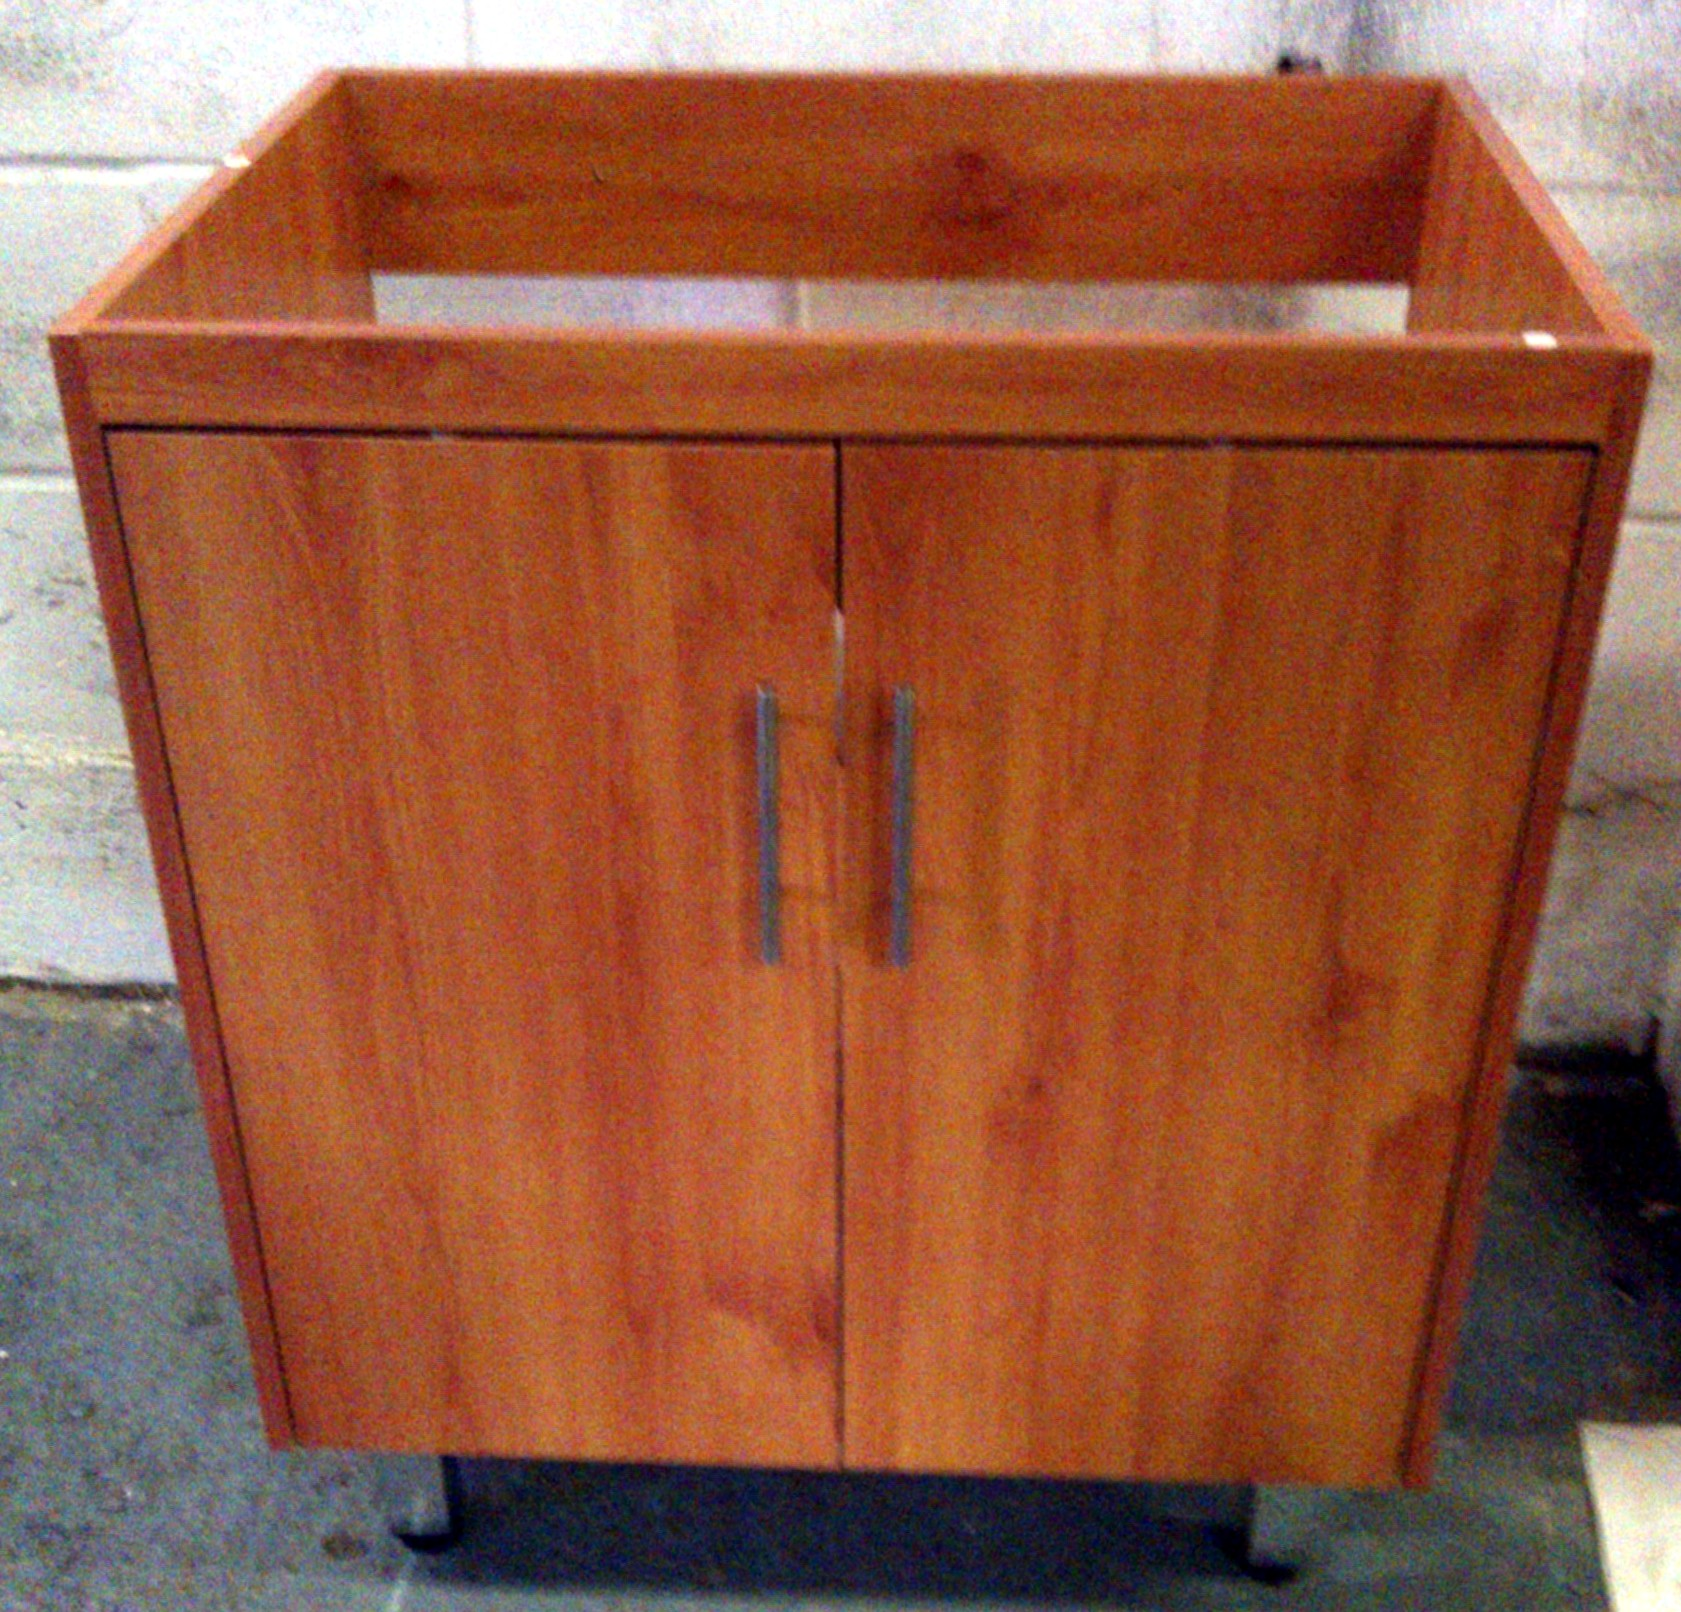 Antique Pine Vanity Unit Limited Offer Bathrooms And Kitchens Without Sink To